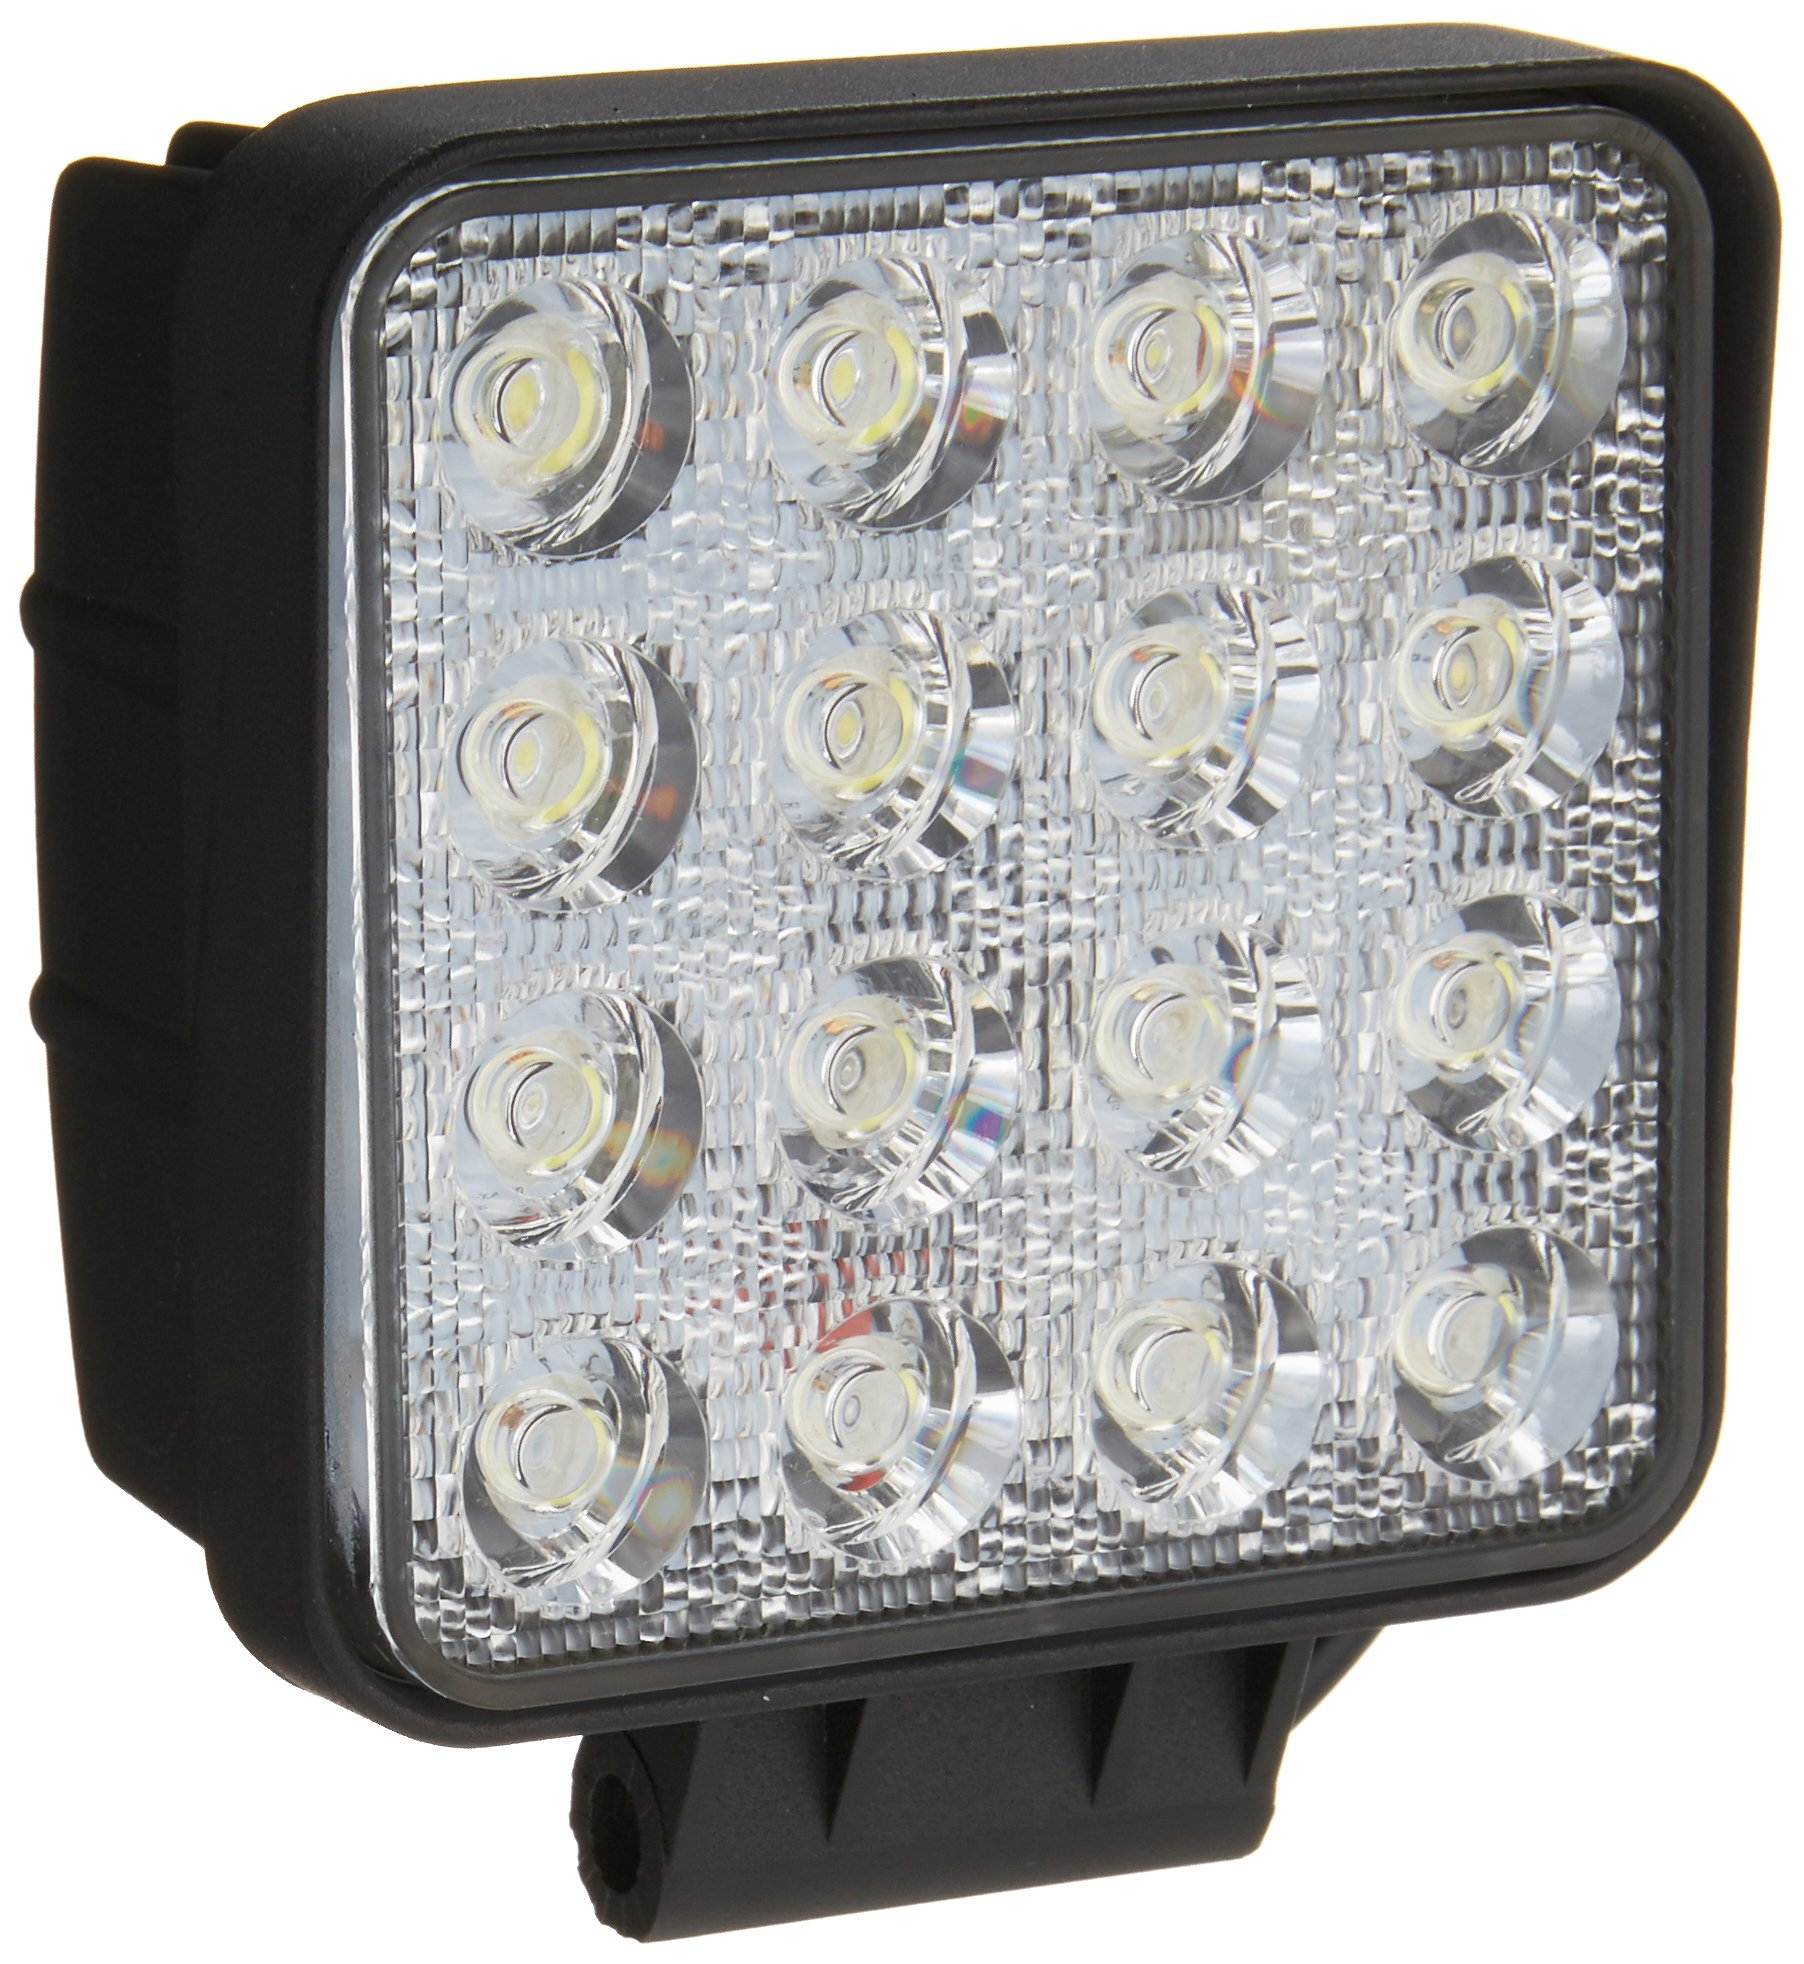 Wiring Work Lights Tractor Bookmark About Diagram Led Amazon Com Rh Fog Light For